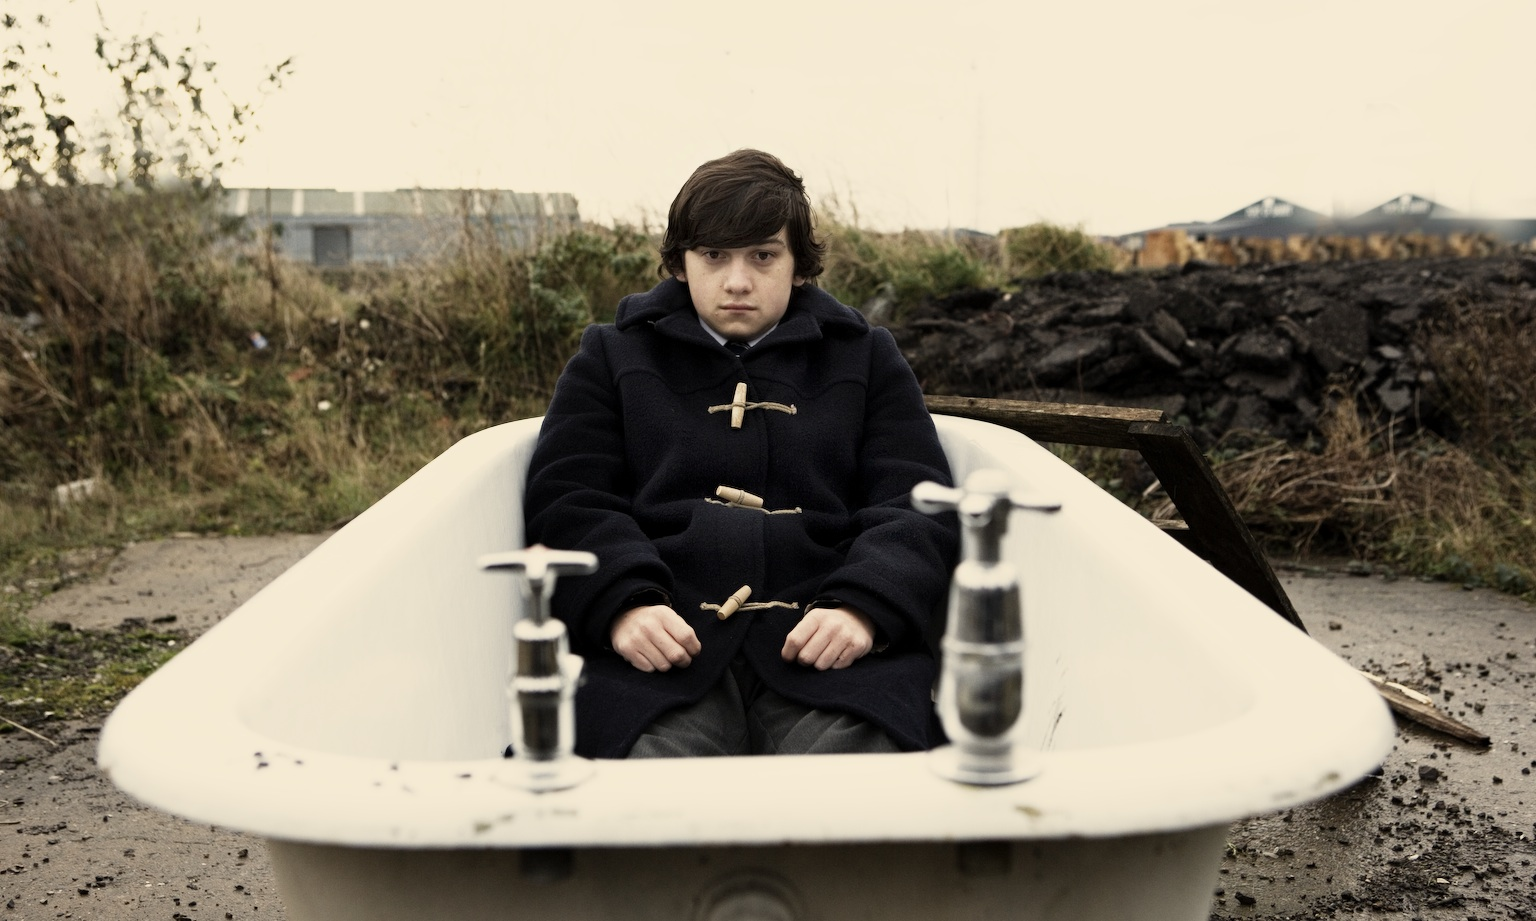 REVIEW: 'SUBMARINE' IS A SMART AND SHARP COMING-OF-AGE COMEDY AND A PROMISING DEBUT   READ IT HERE .